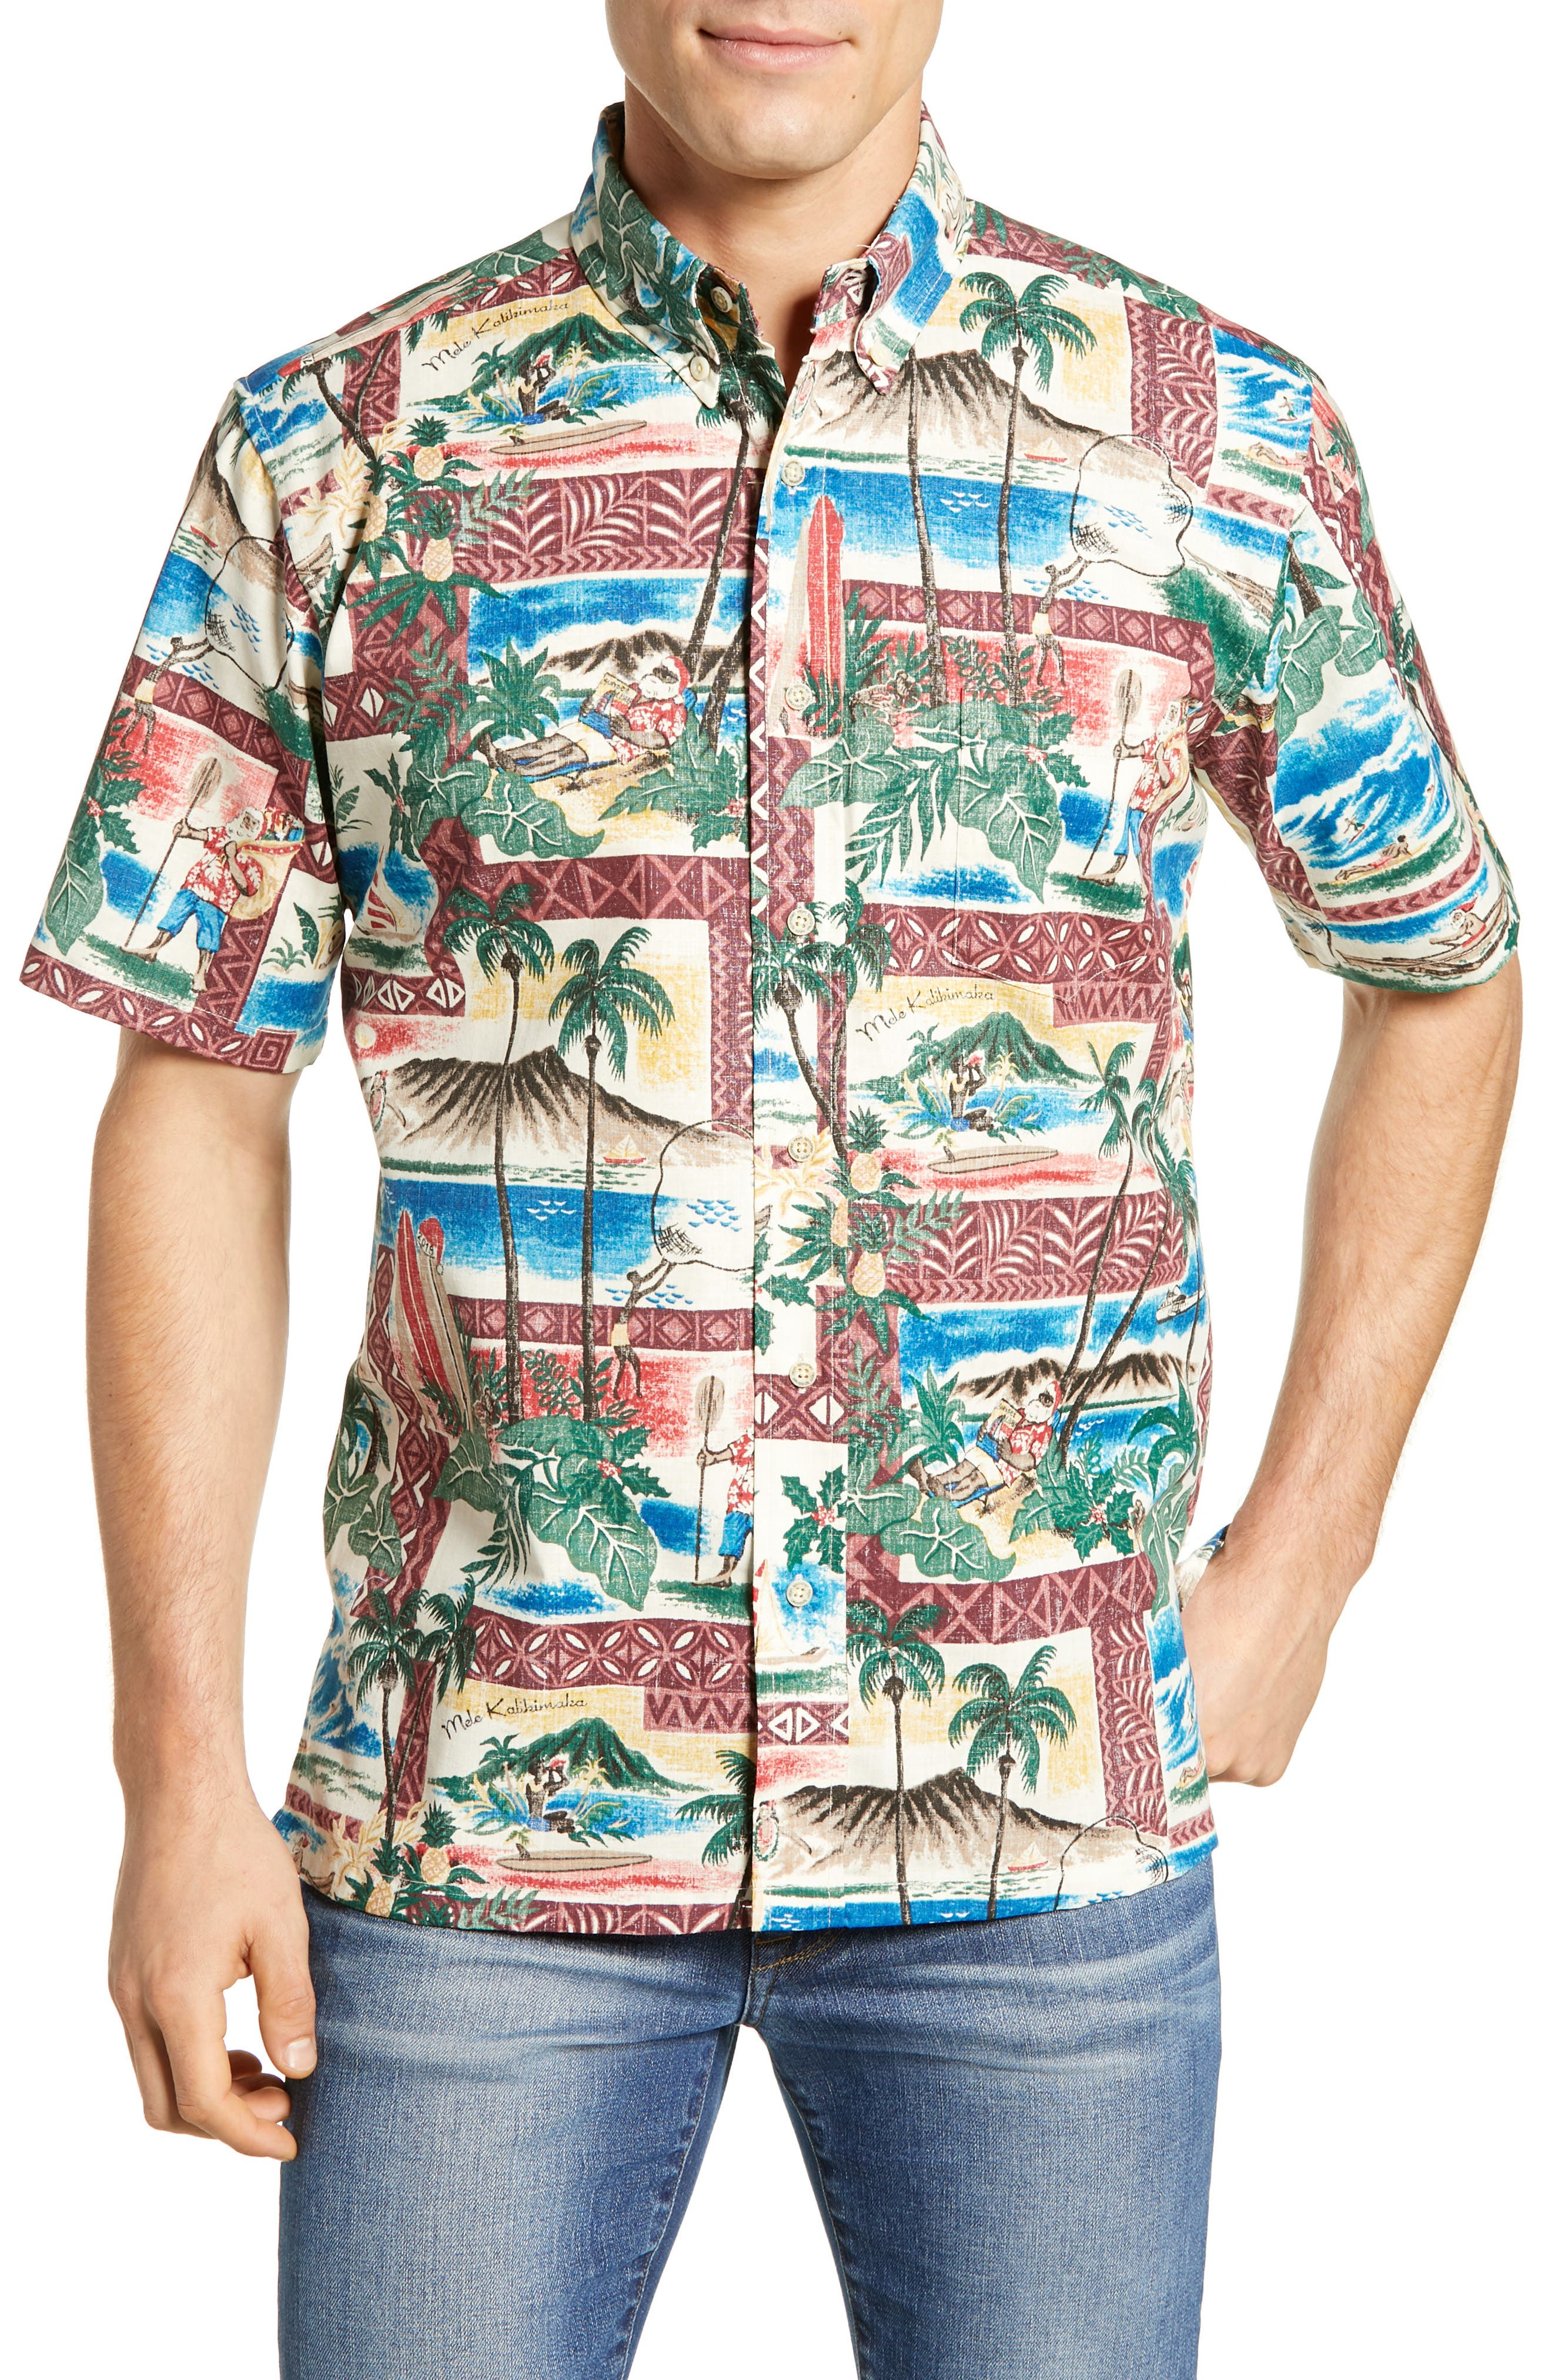 Reyn Spooner Hawaiian Christmas 2018 Classic Fit Sport Shirt, Red